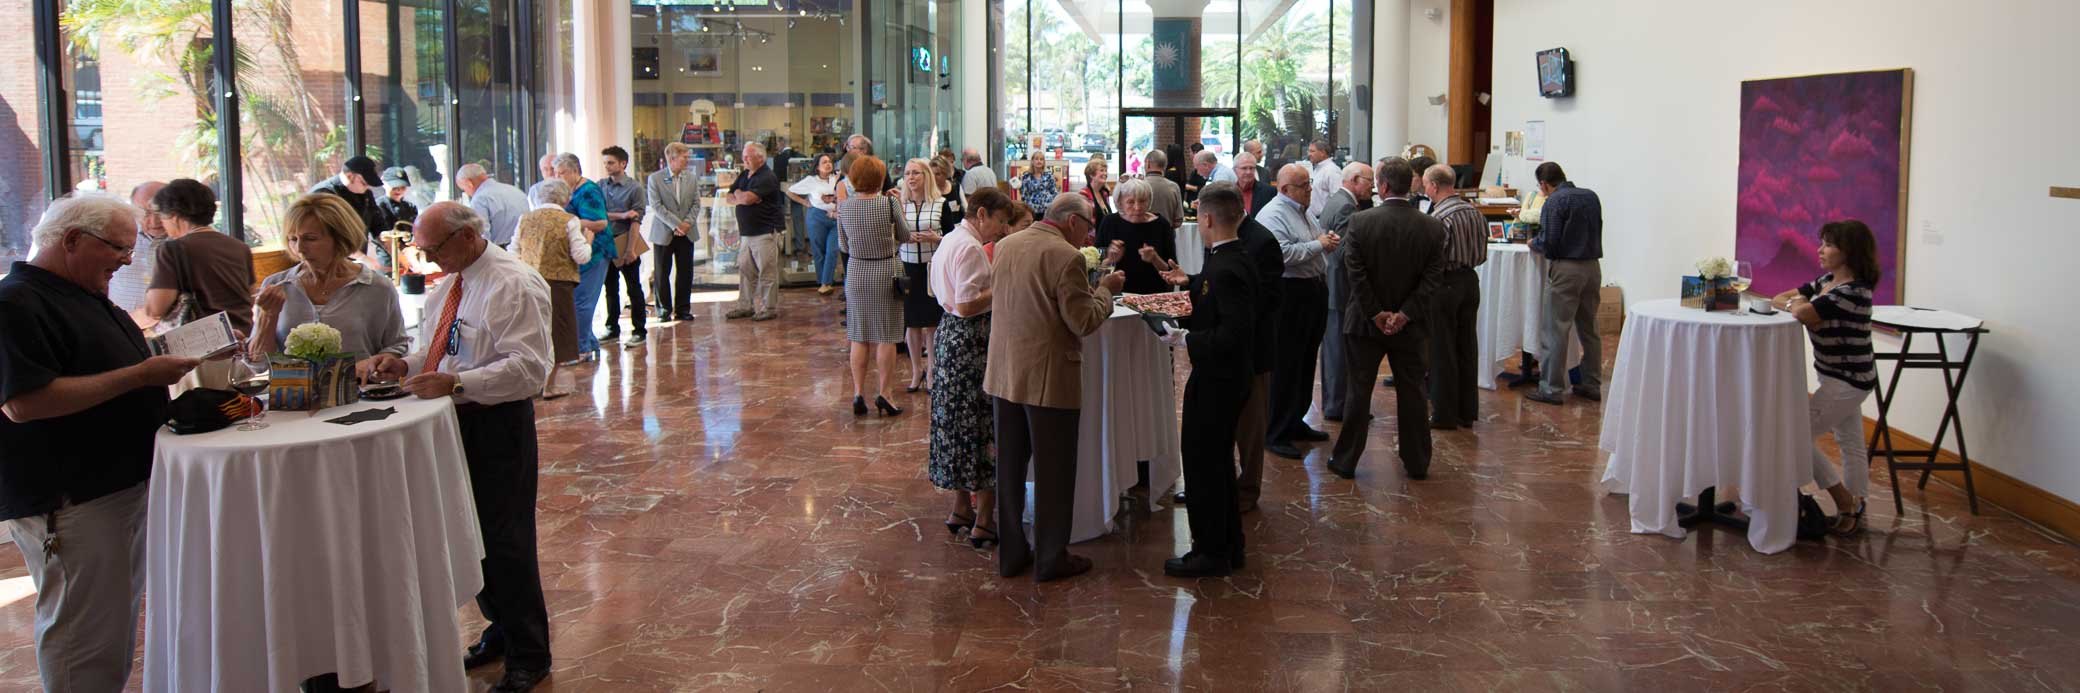 ...or a corporate reception, we can host your event.